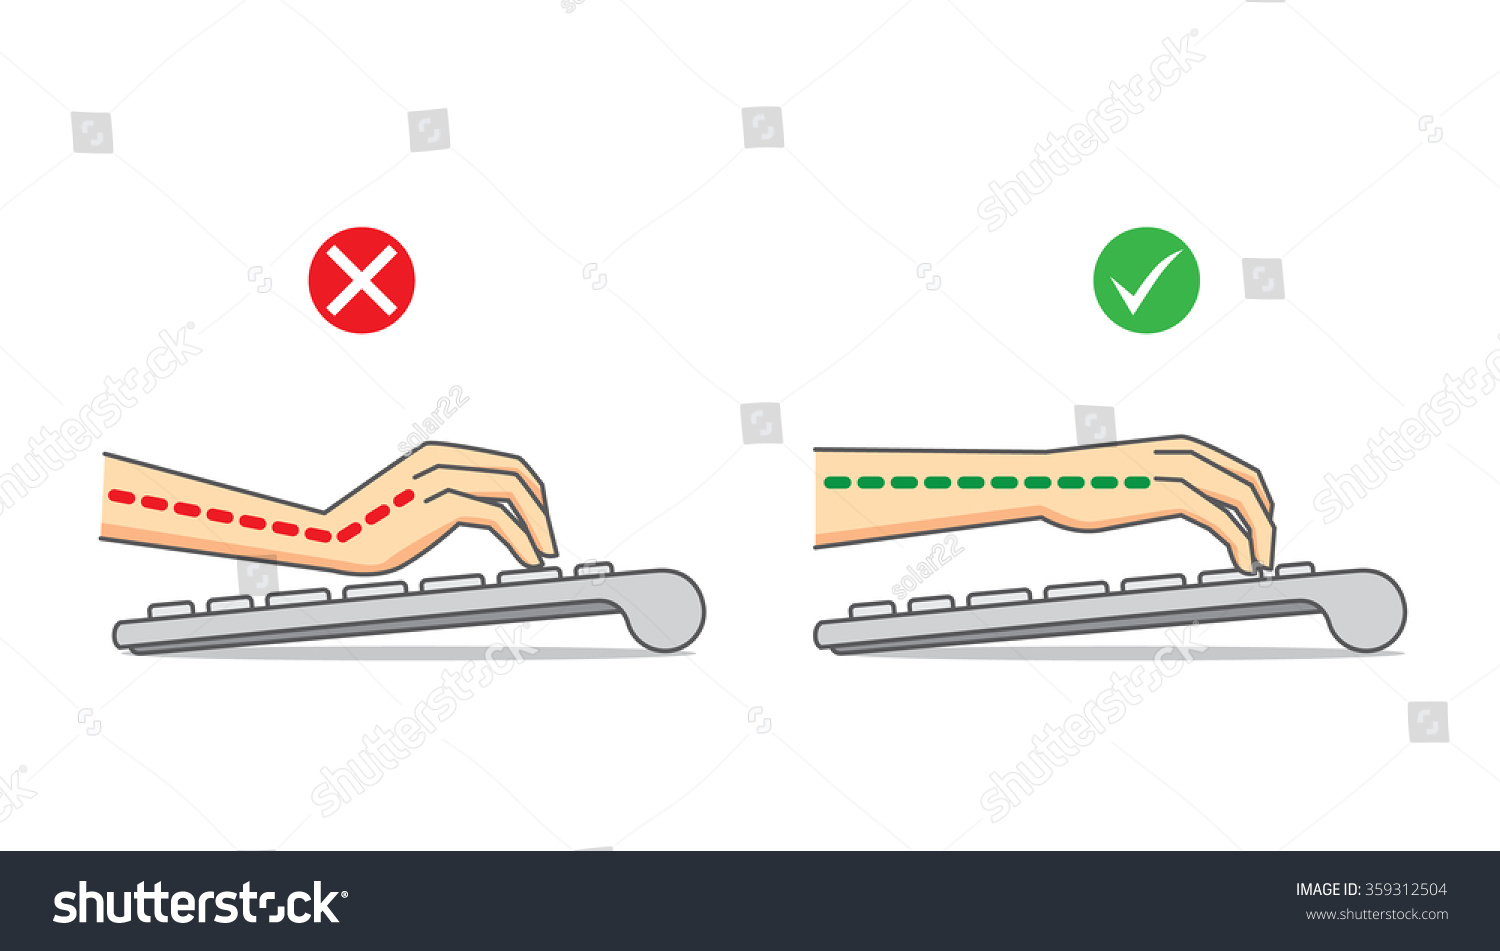 Head Pain Outline Stock Vector Illustration Of Diagram Manual Guide